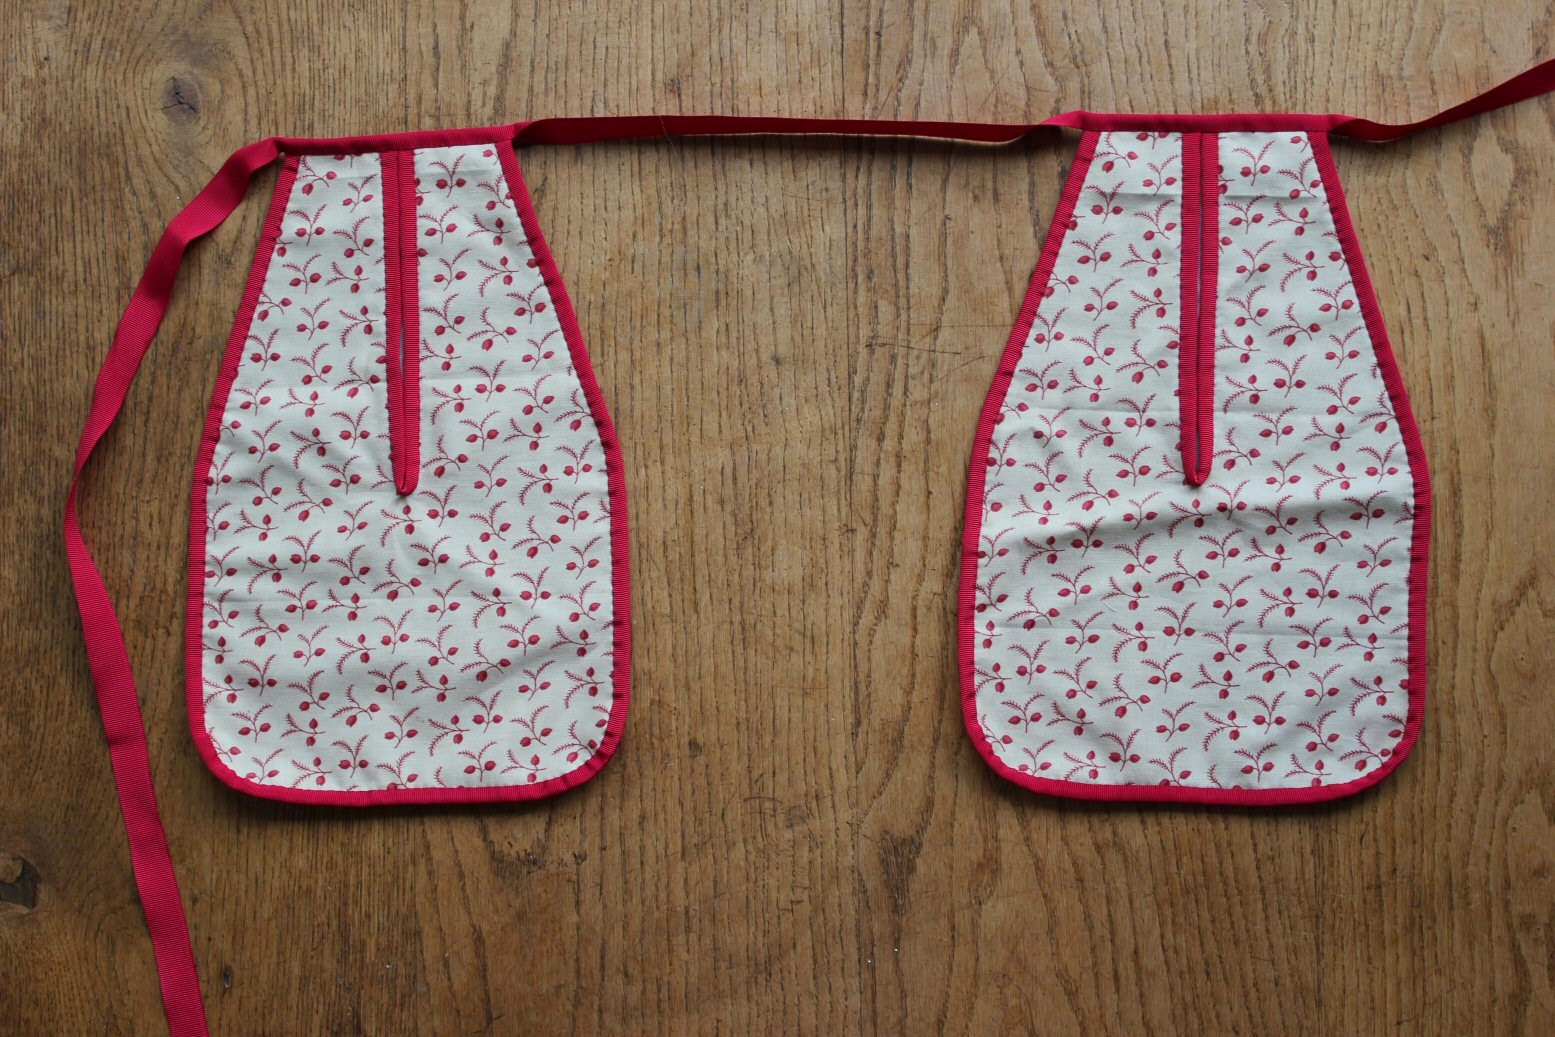 http://misshendrie.blogspot.nl/2014/11/pair-of-pockets.html